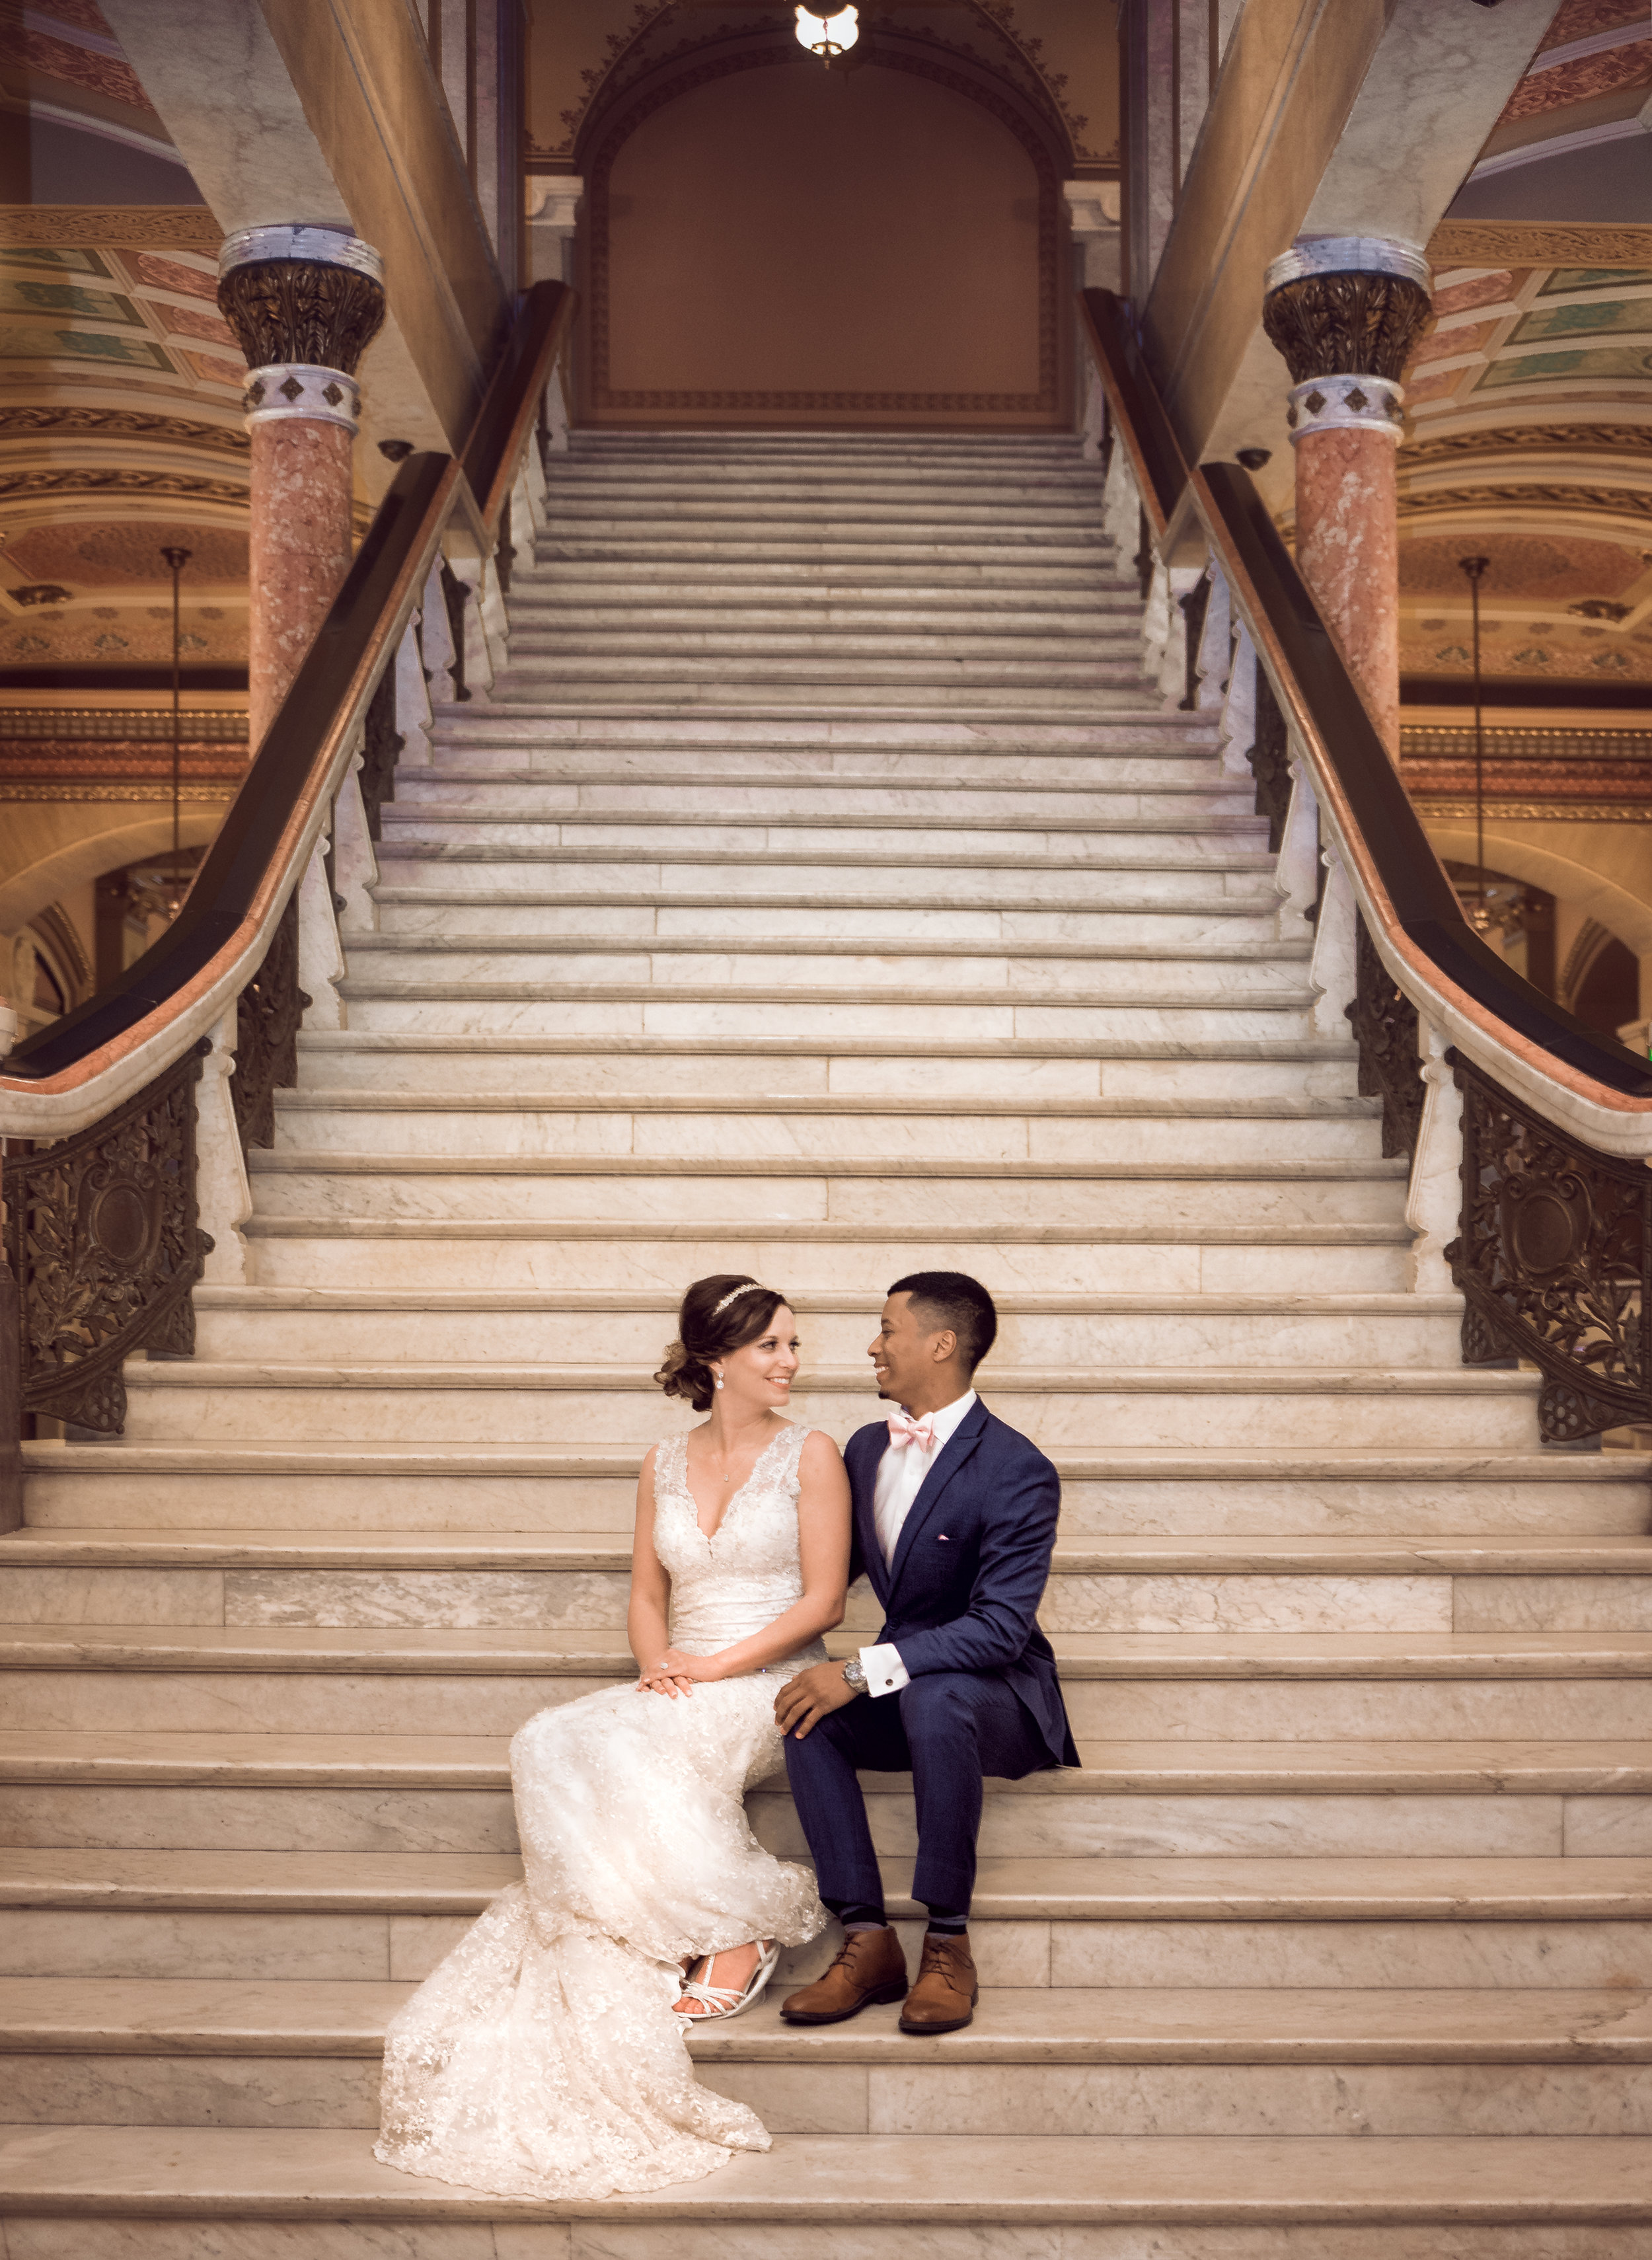 bride-groom-sitting-stairs-palace-loving-smiles.jpg